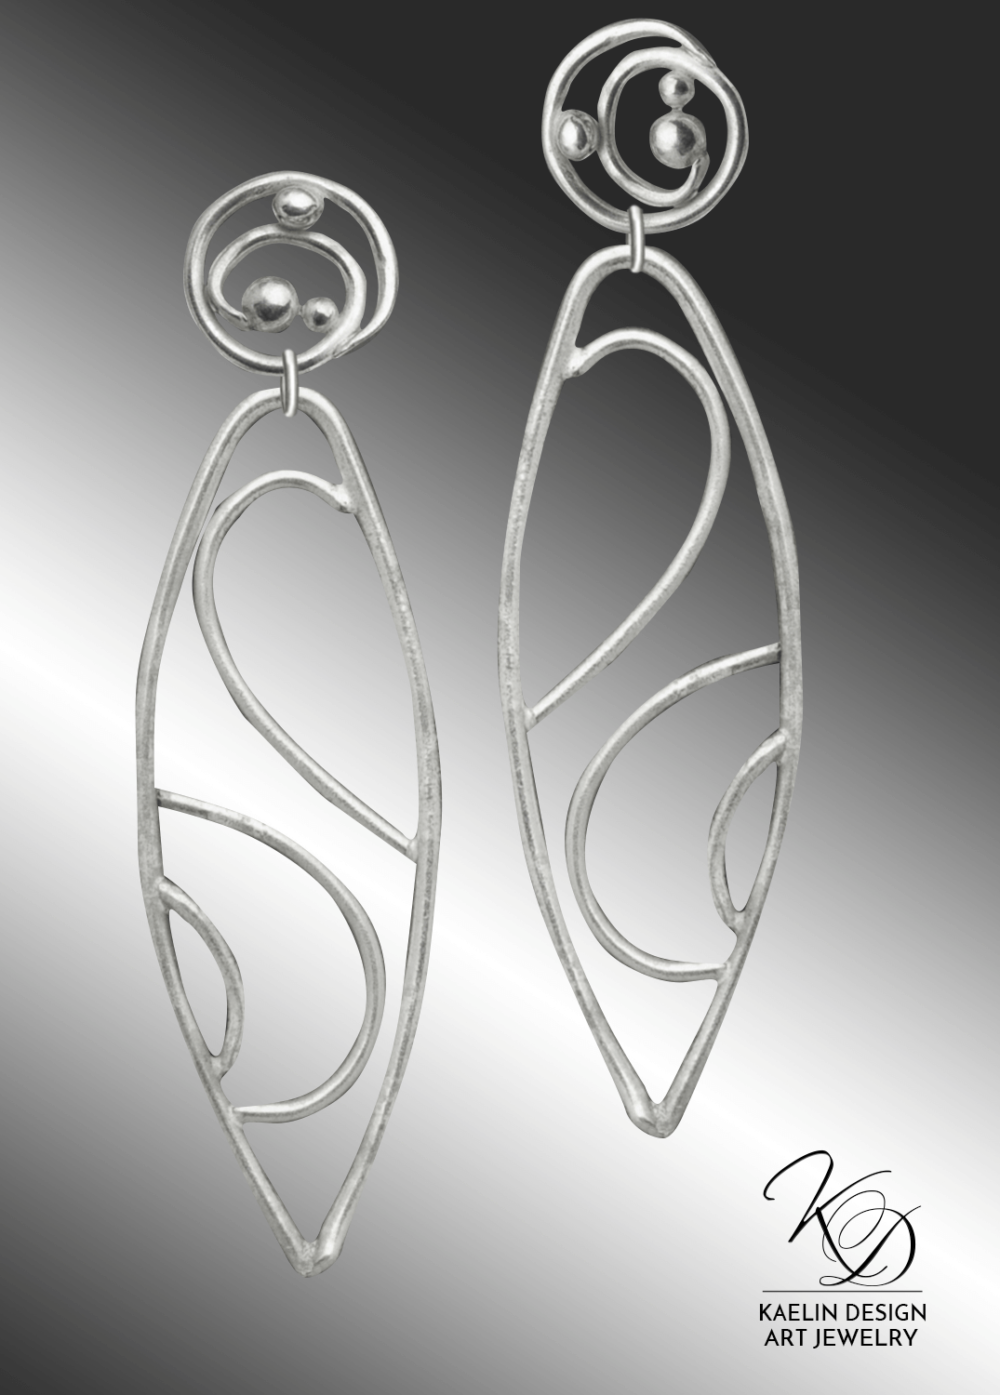 Onami Hand Forged Silver Wave Earrings inspired by Hamonshu by Yuzan Mori